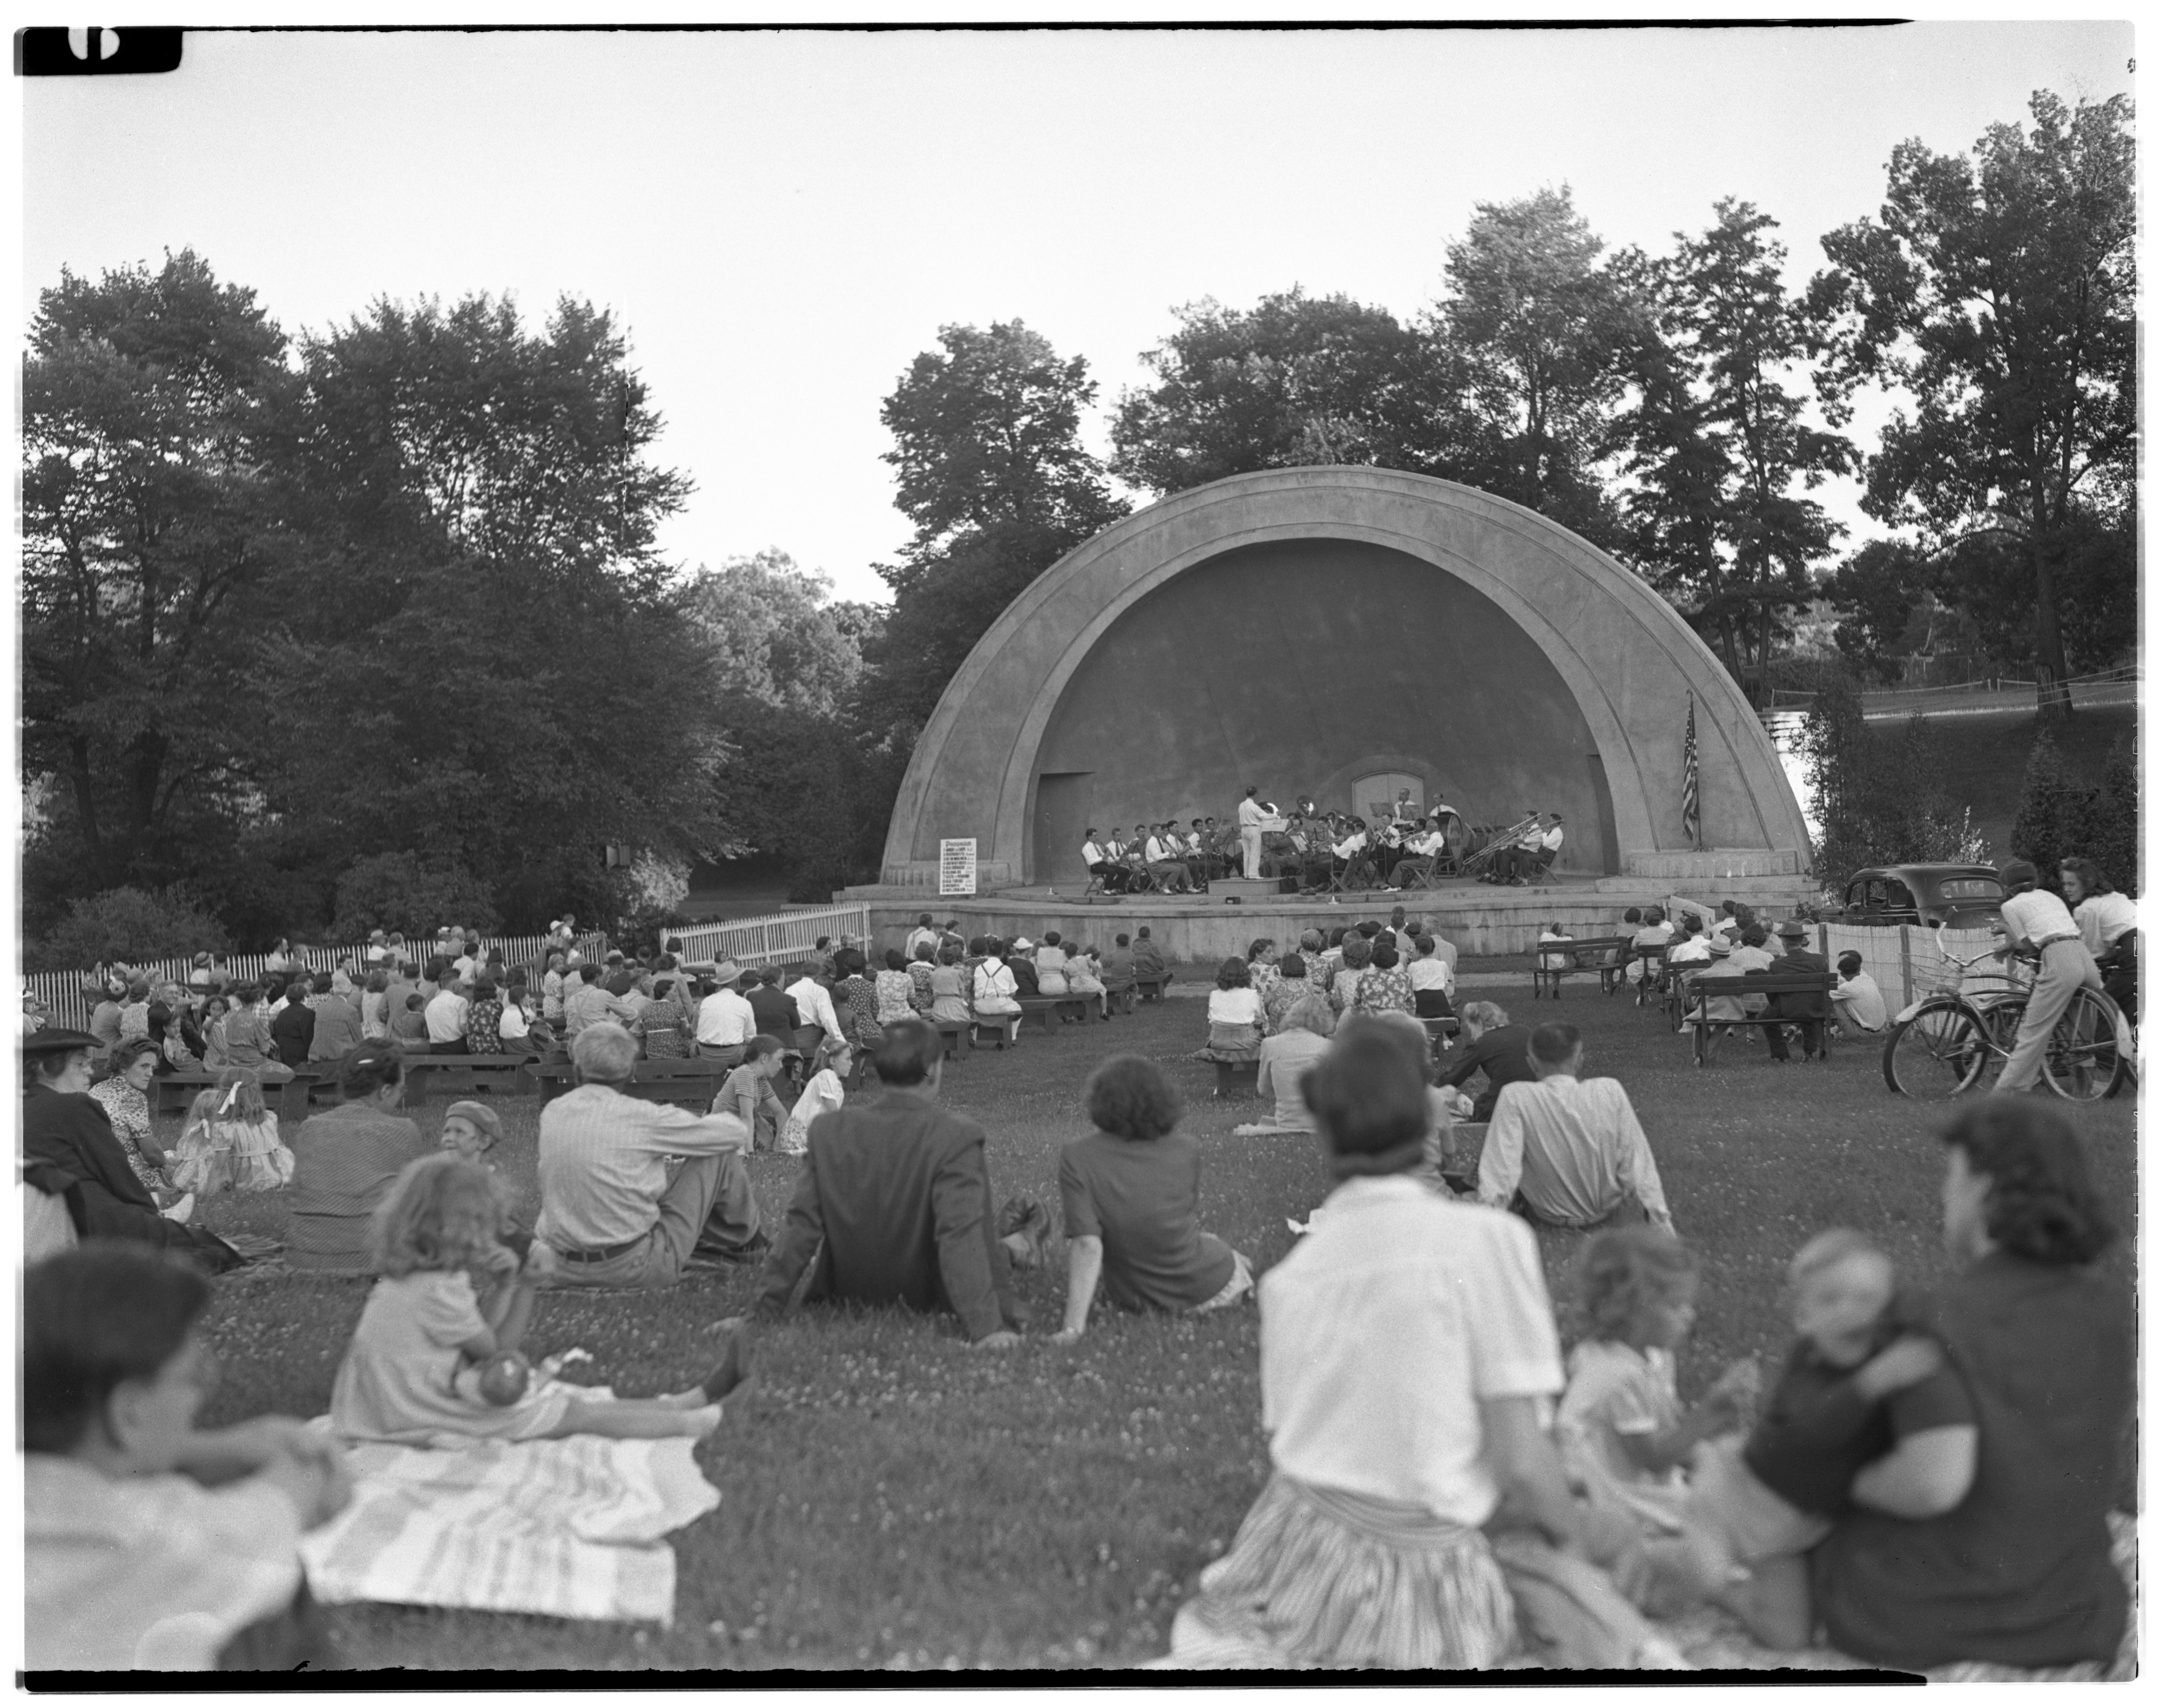 Image from Season Opening Concert at West Park Bandshell, July 1943